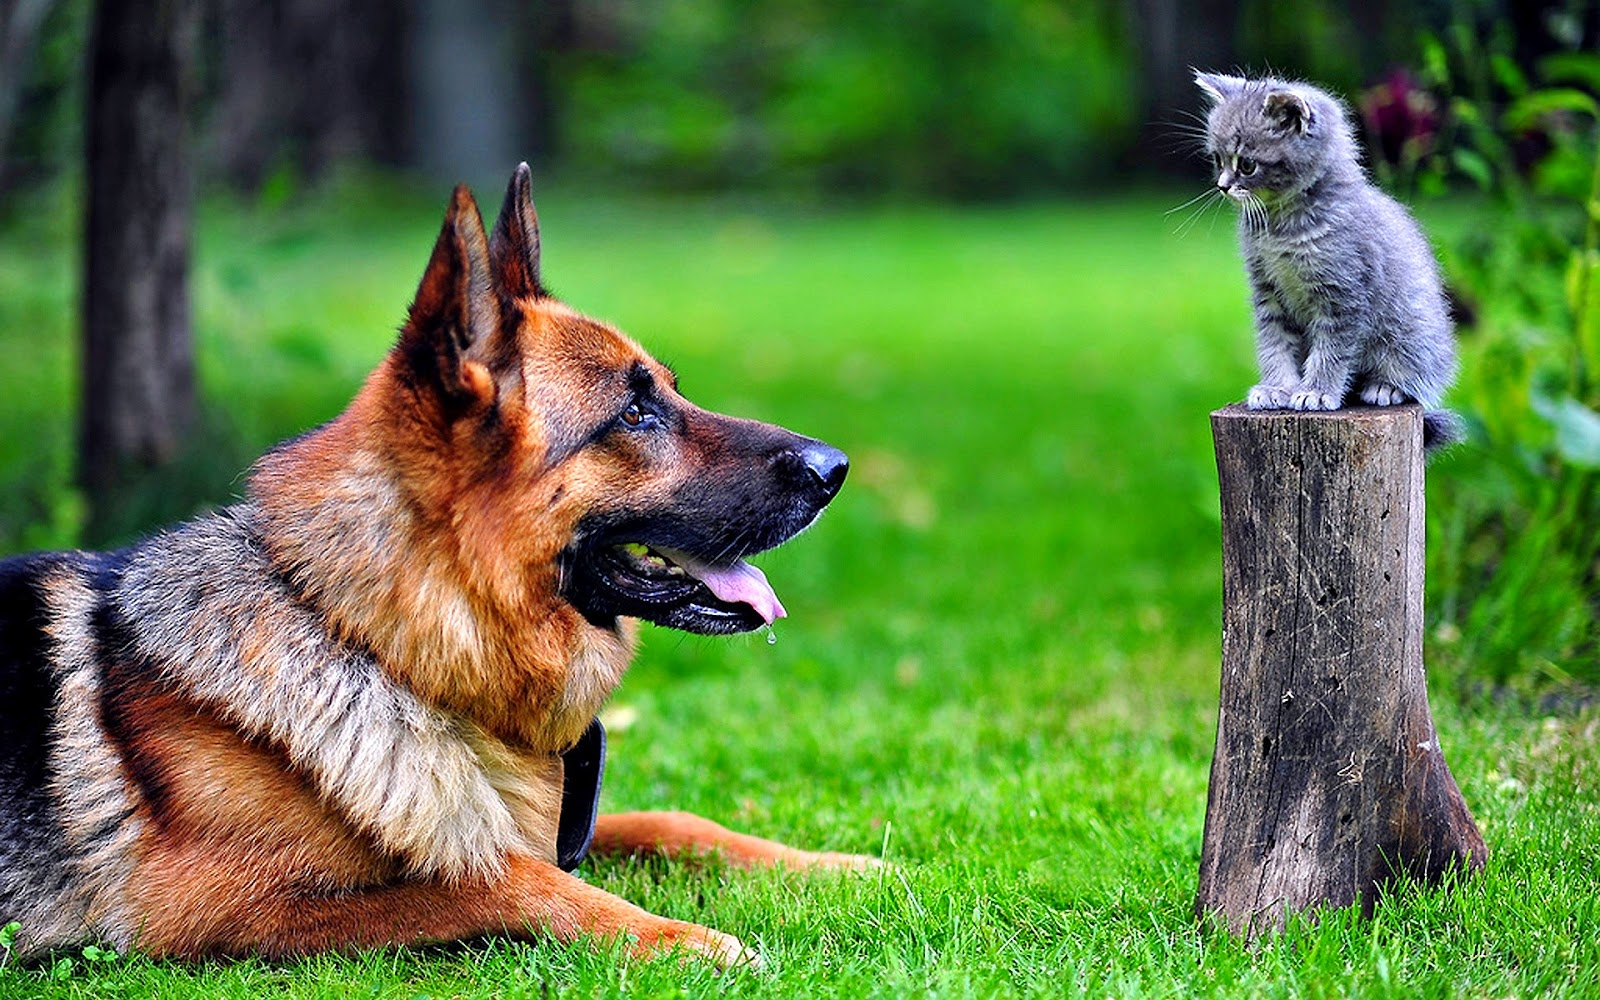 Dog And Cat Wallpapers Hd Wallpapers High Quality Wallpapers